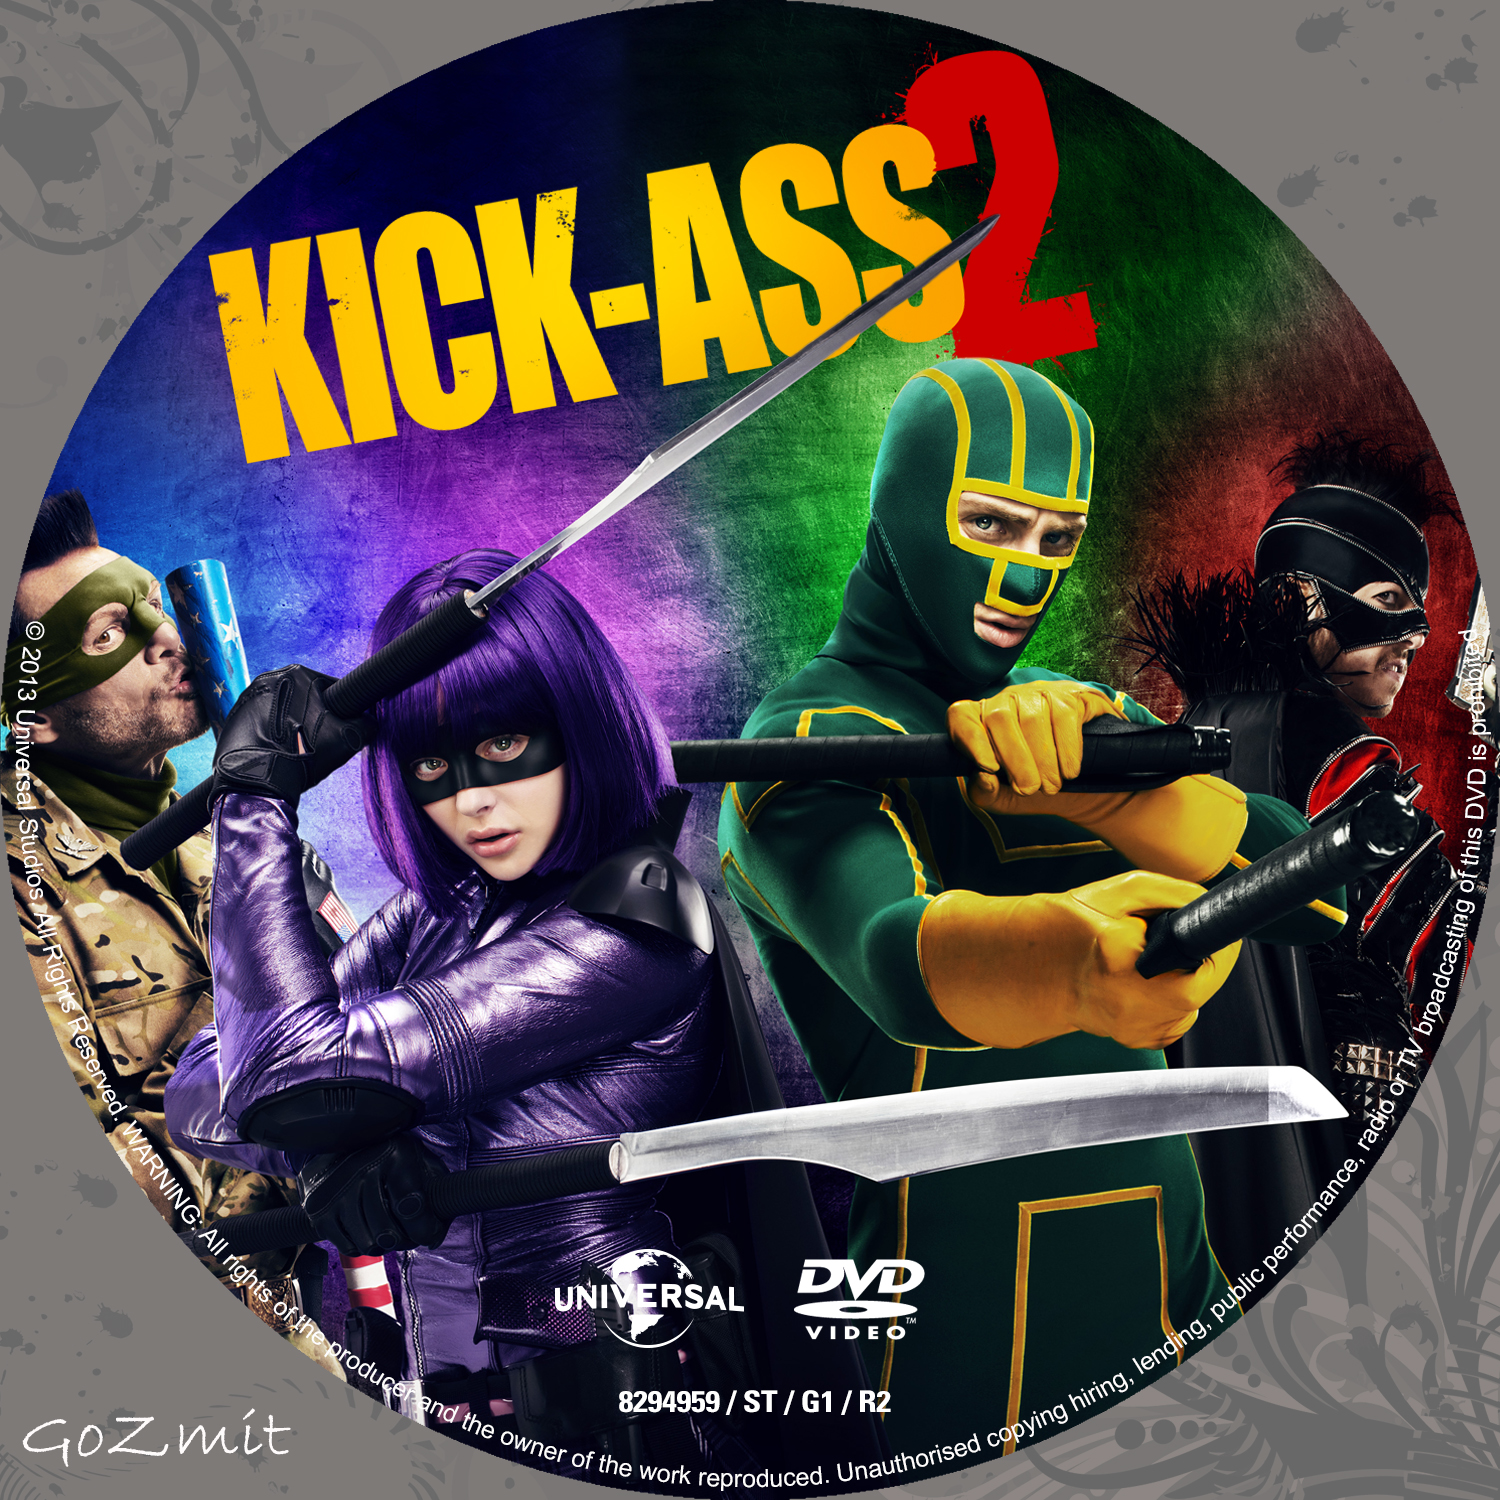 kick ass cover letters - kick ass cover best naked ladies